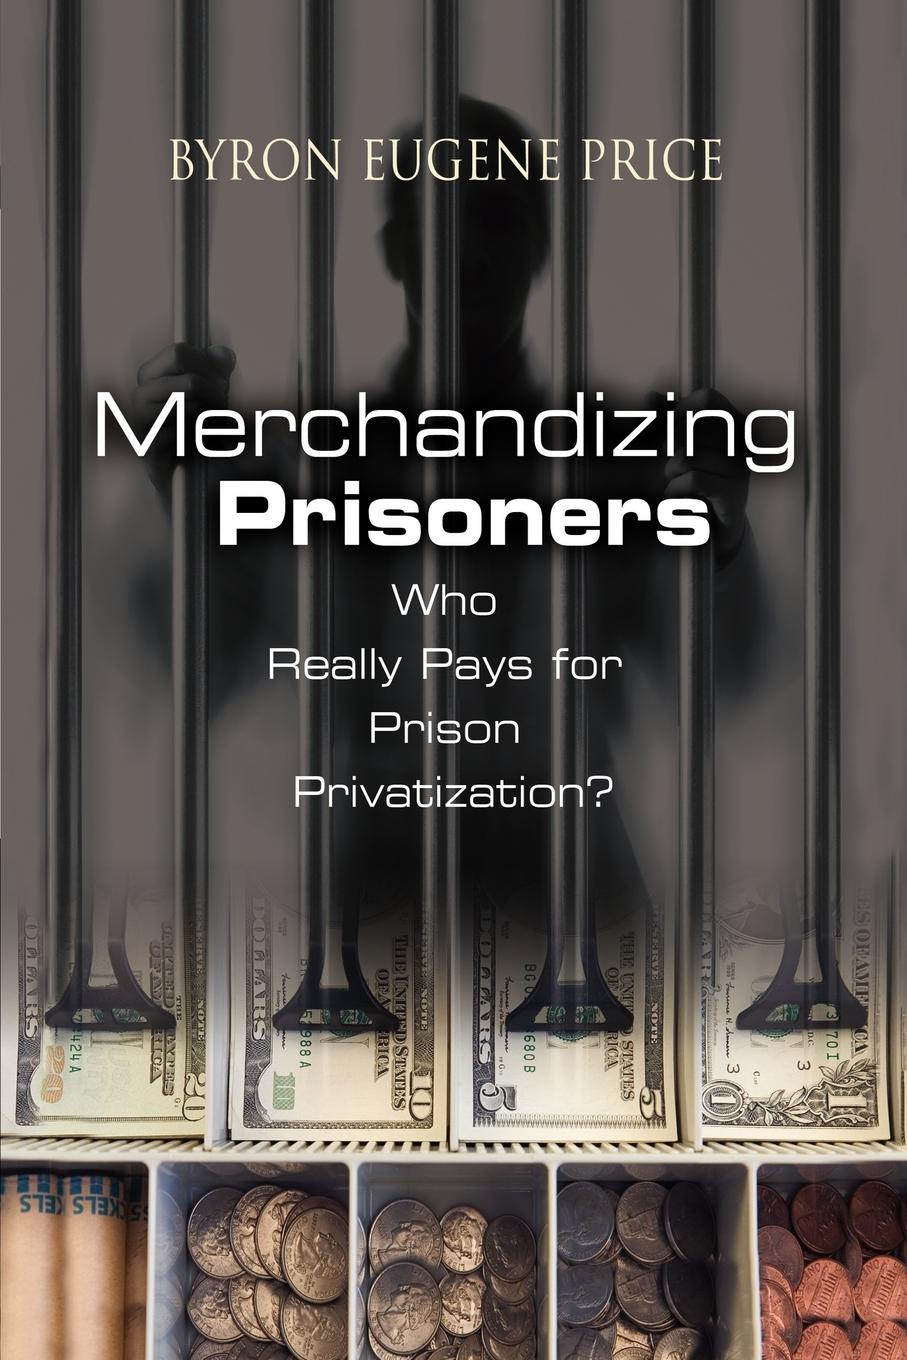 Byron Eugene Price Merchandizing Prisoners. Who Really Pays for Prison Privatization? prisoners